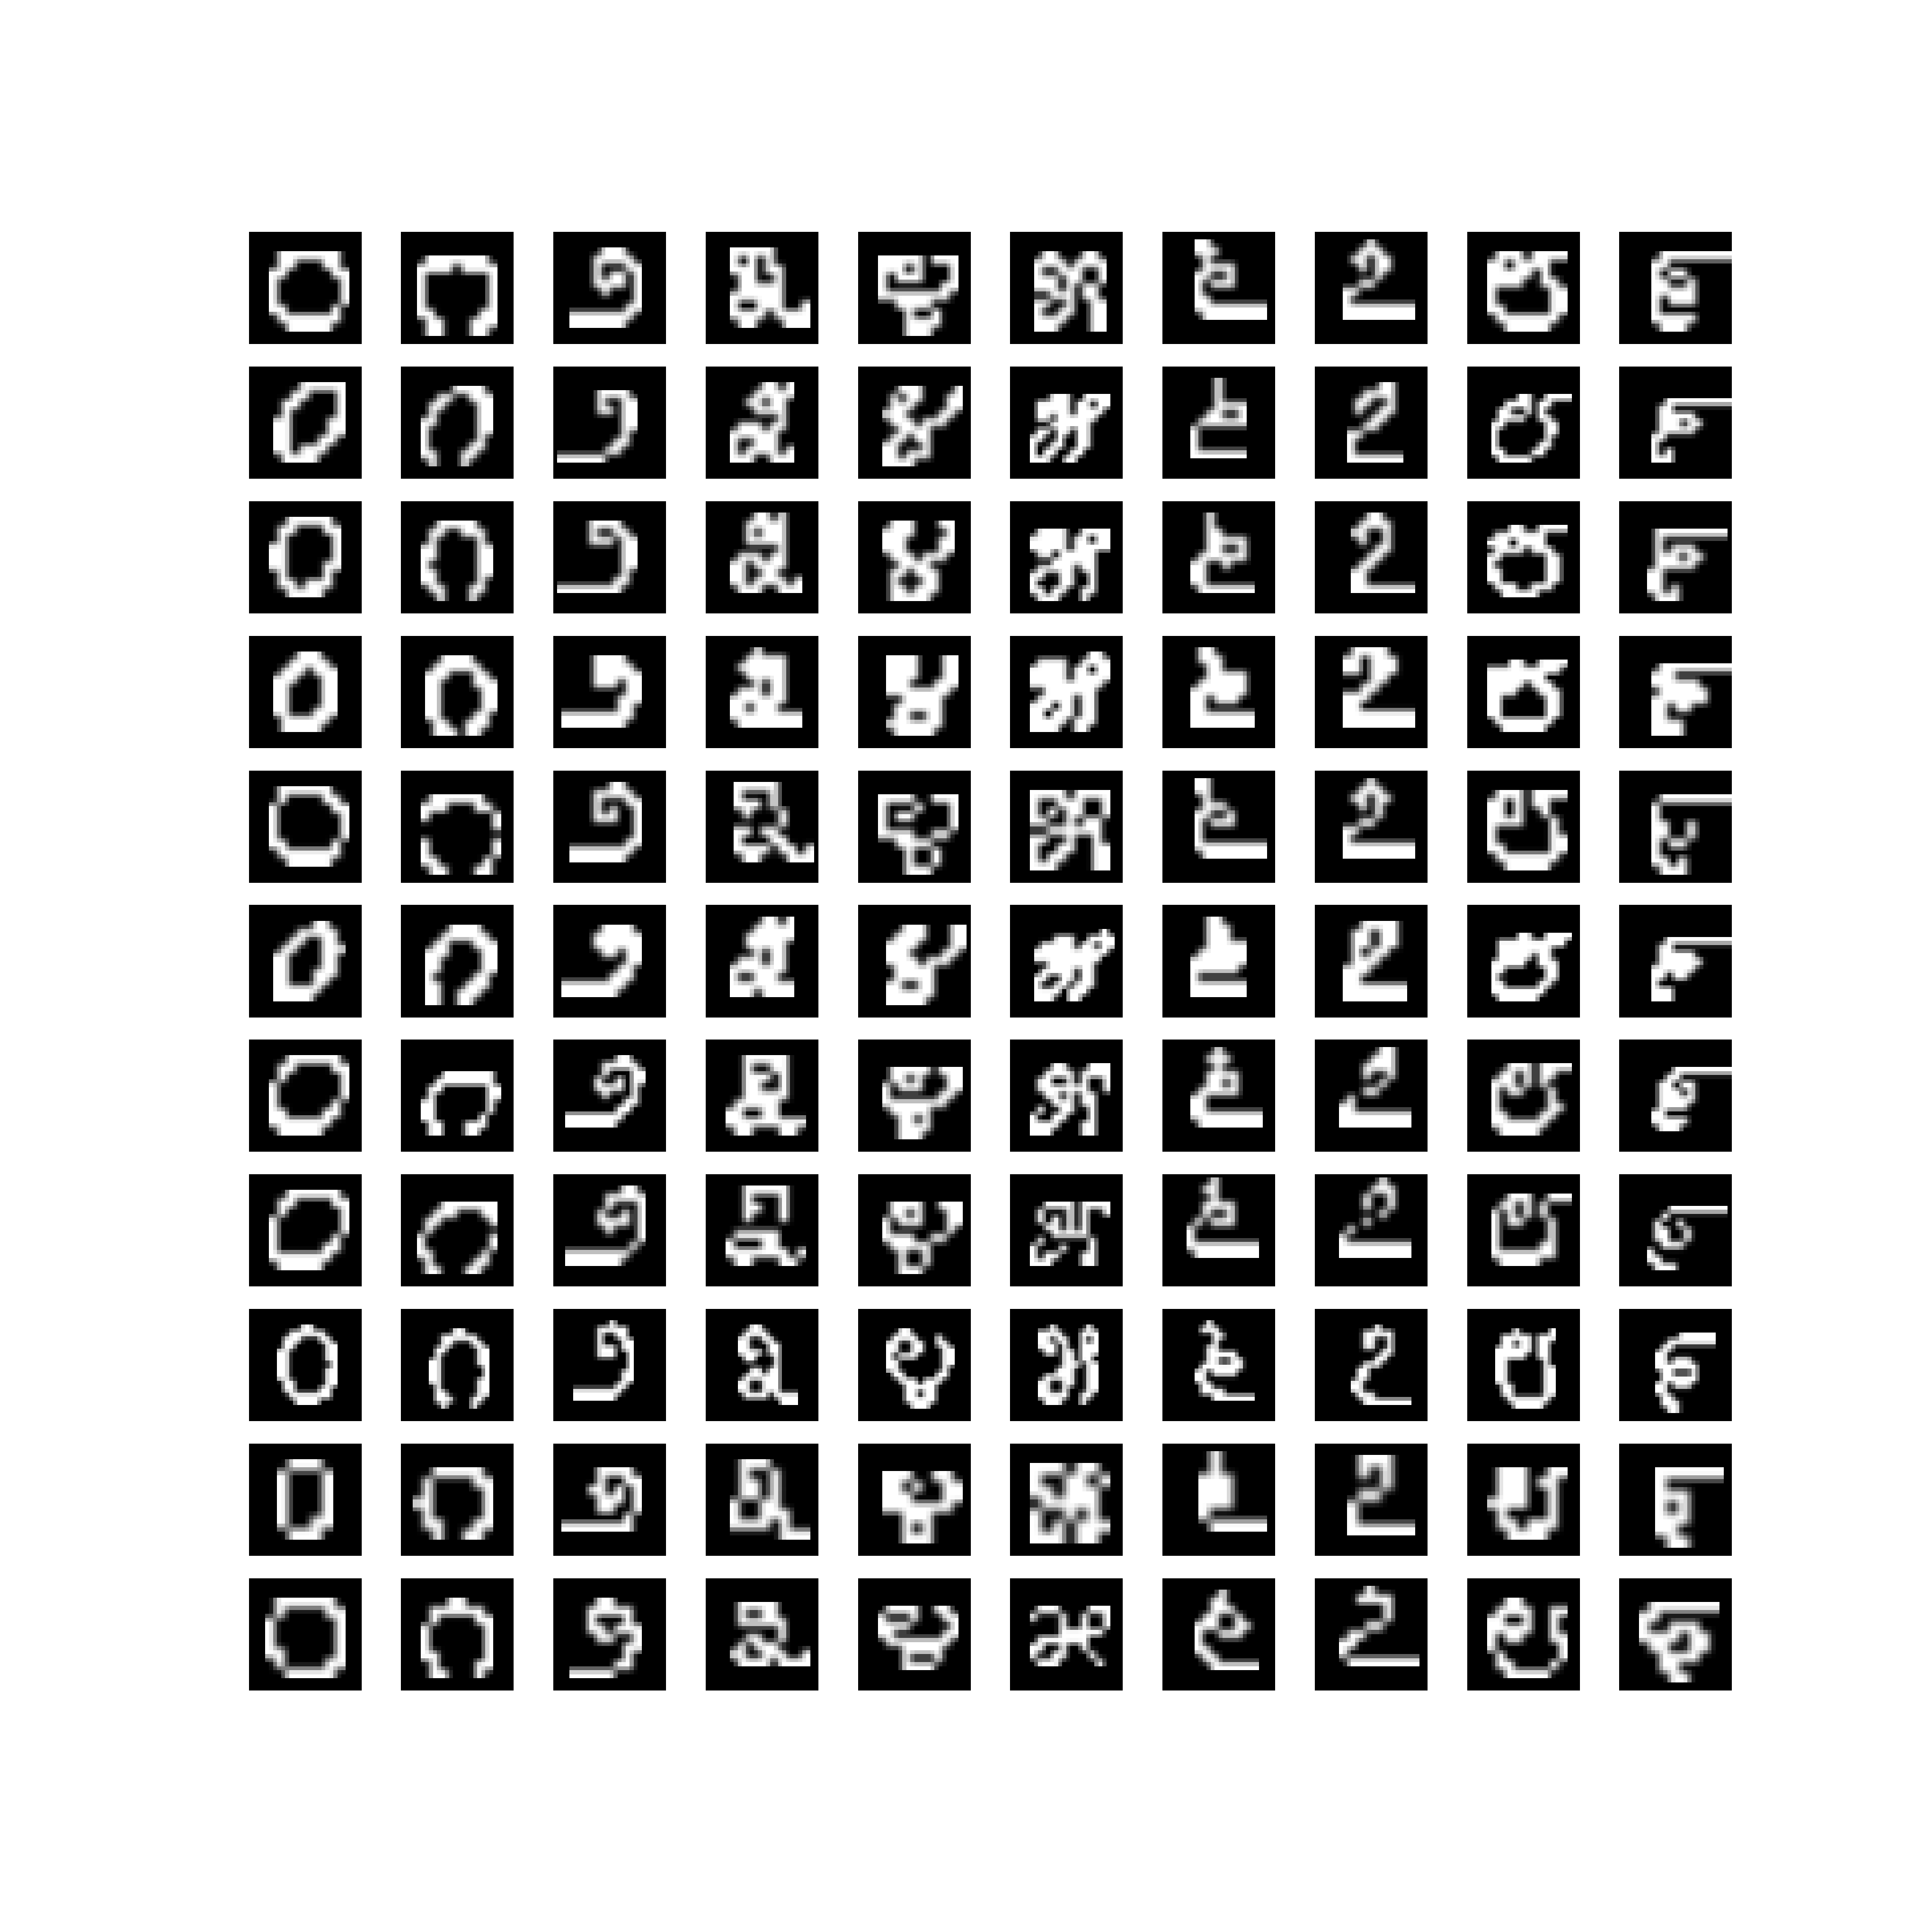 Kannada-MNIST: A new handwritten digits dataset for the